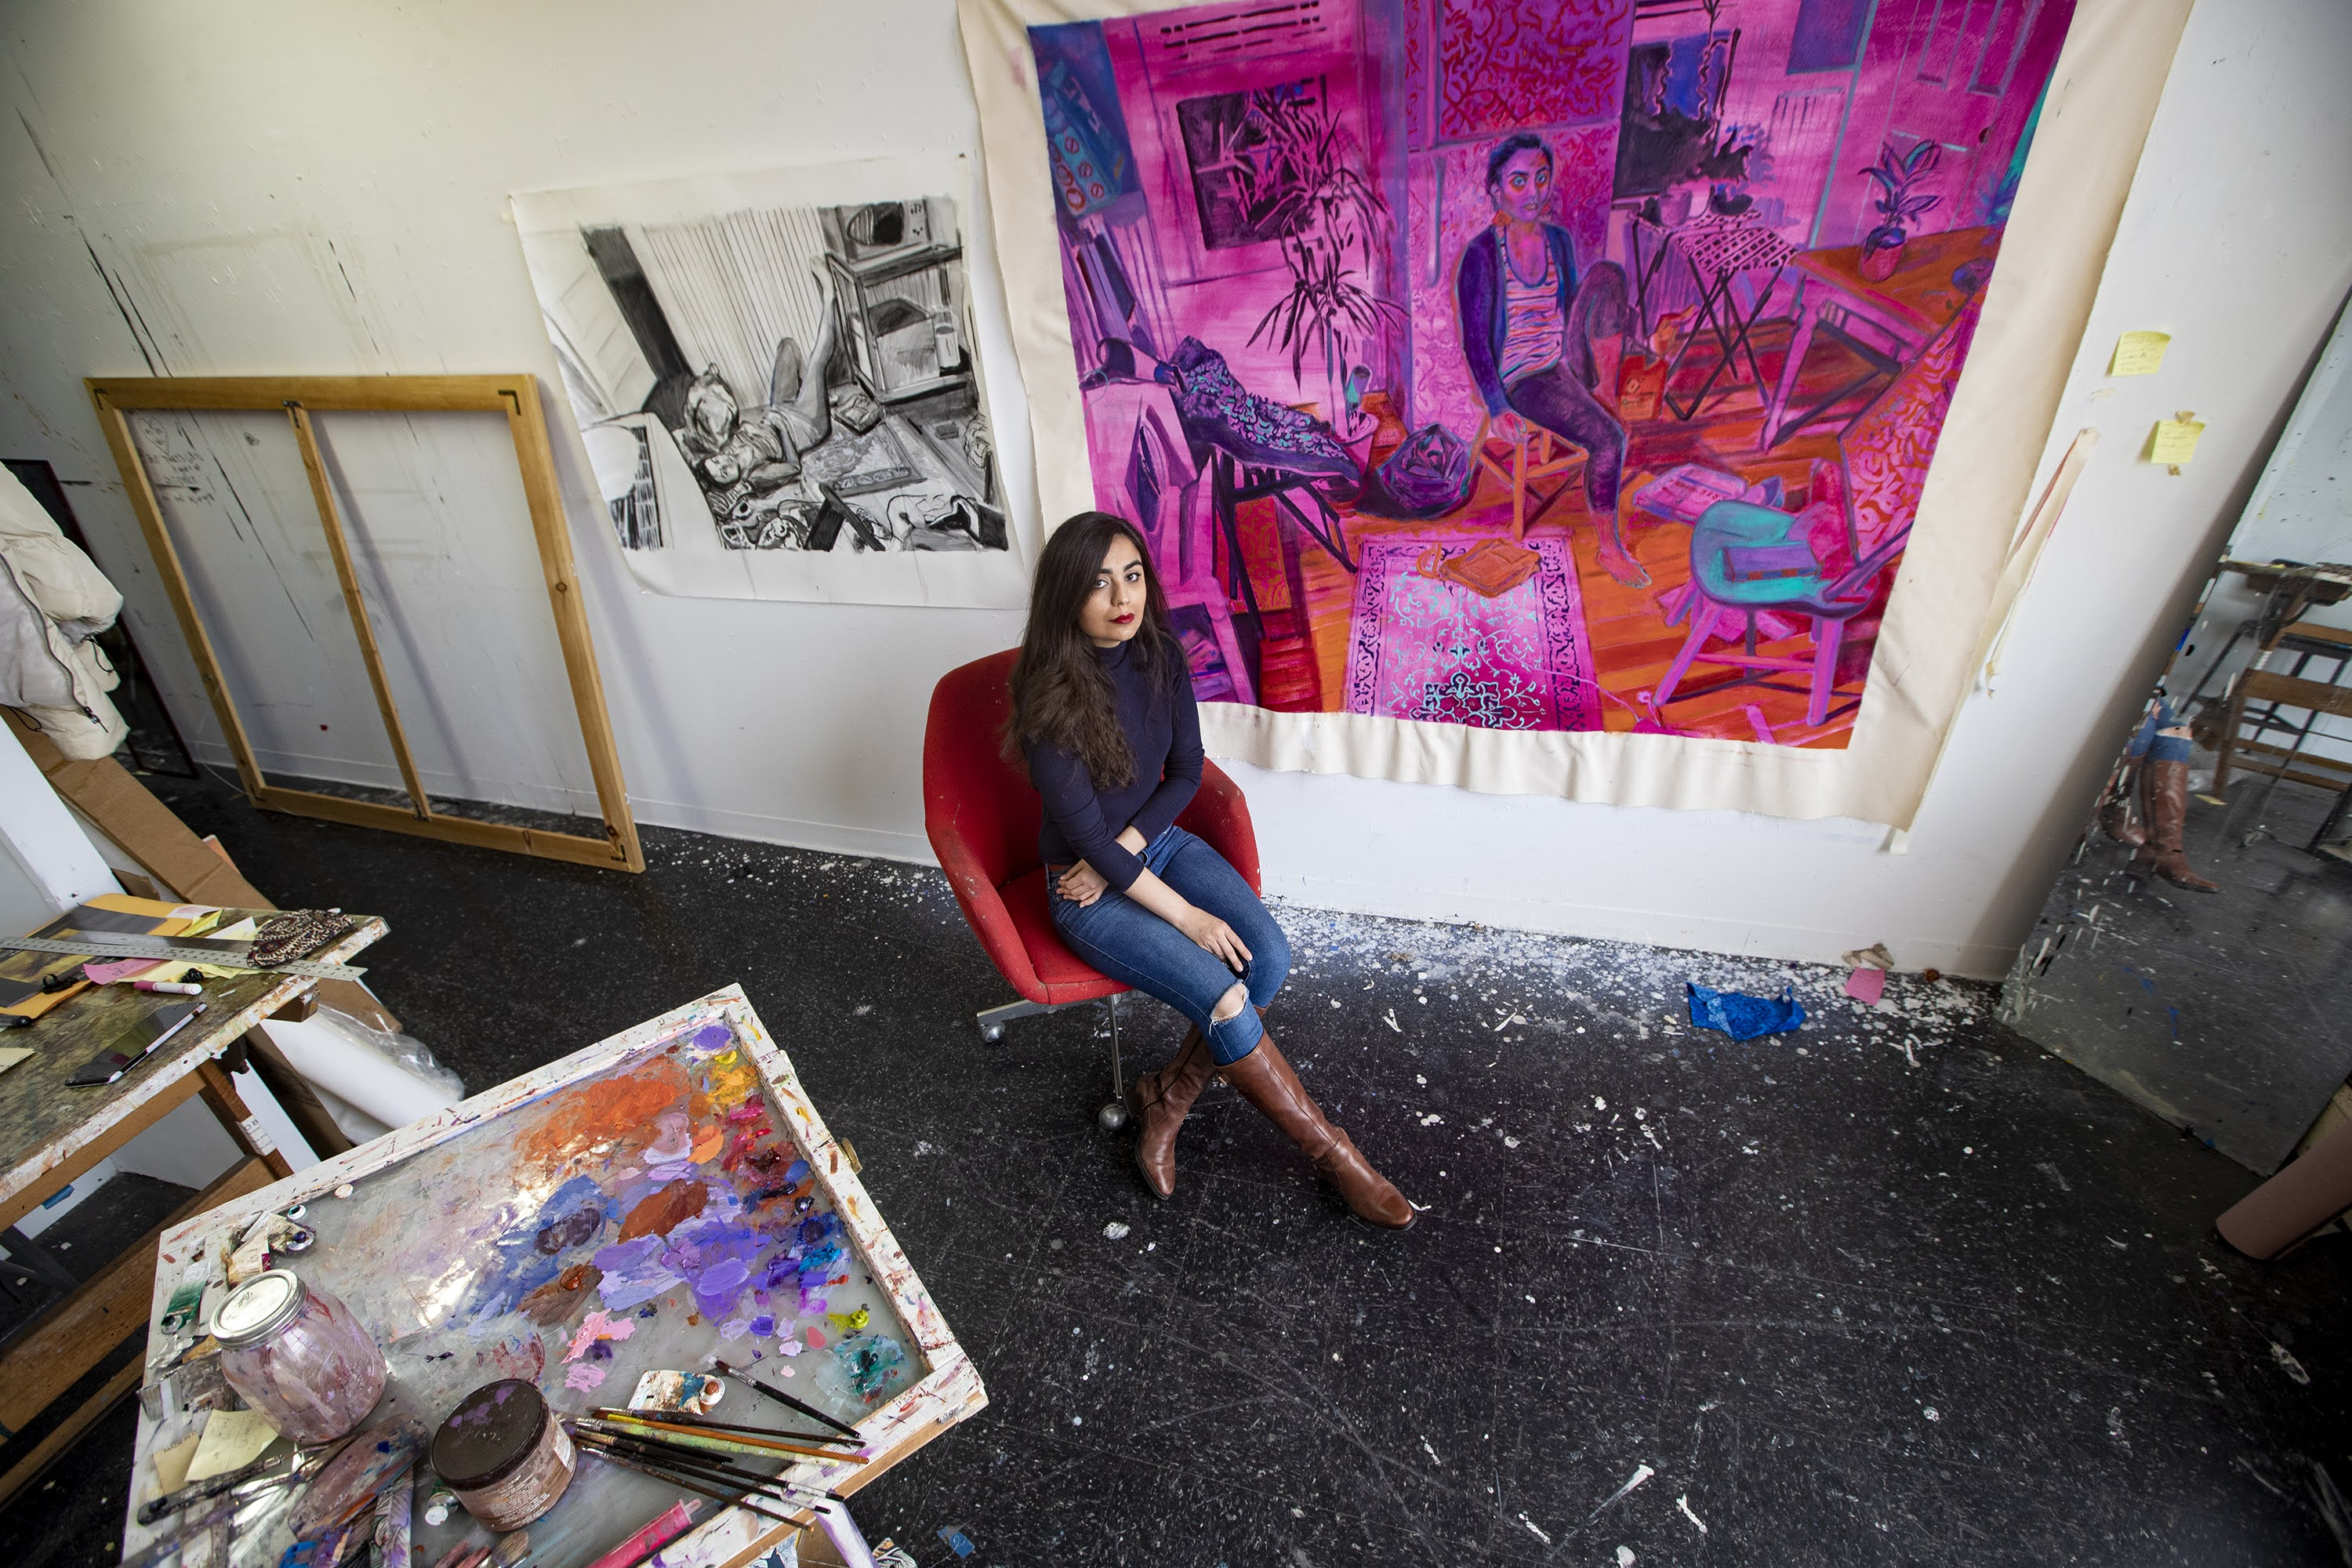 """Artist Shabnam Jannesari in front of a painting she is currently working on entitled """"62 Sidney Street"""" at her studio space at the UMass Dartmouth College of Visual and Performing Arts in New Bedford. (Jesse Costa/WBUR)"""